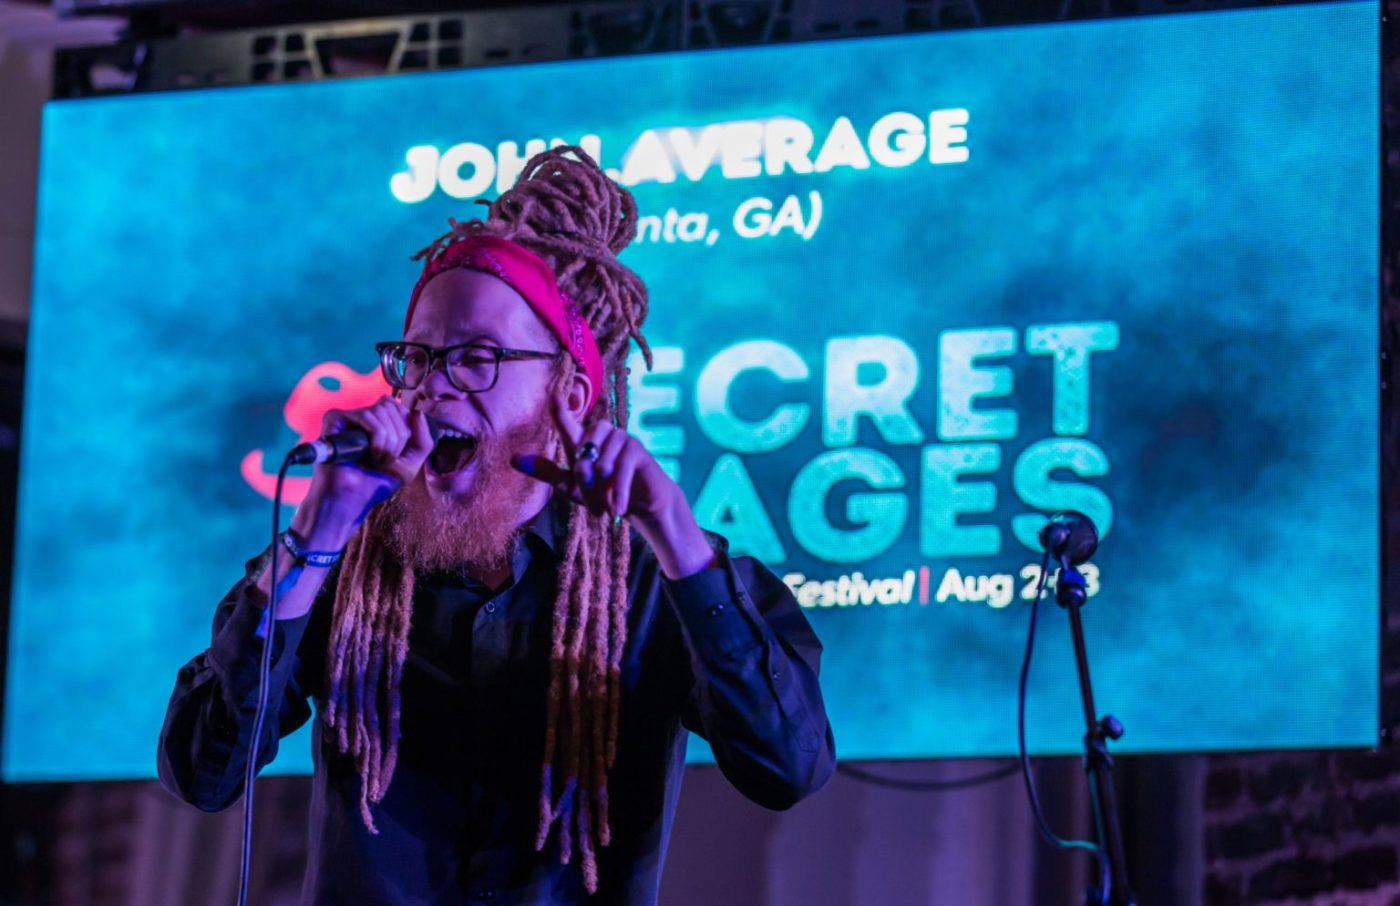 Diverse genres of music are all present at one music discovery festival: Secret Stages. Photo by Tyler Woods for Secret Stages